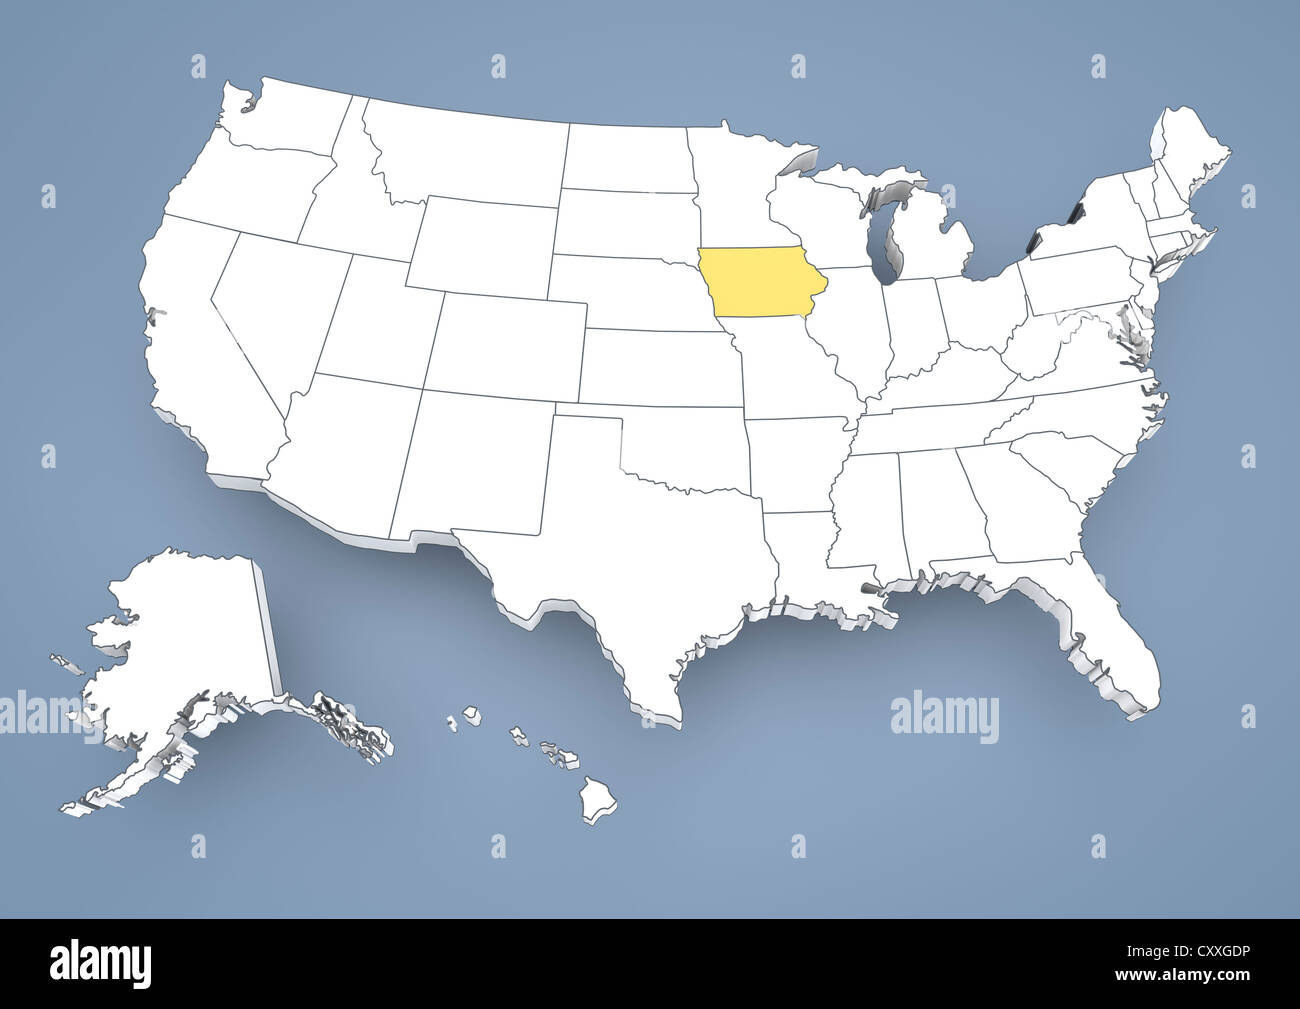 Iowa IA highlighted on a contour map of USA United States of